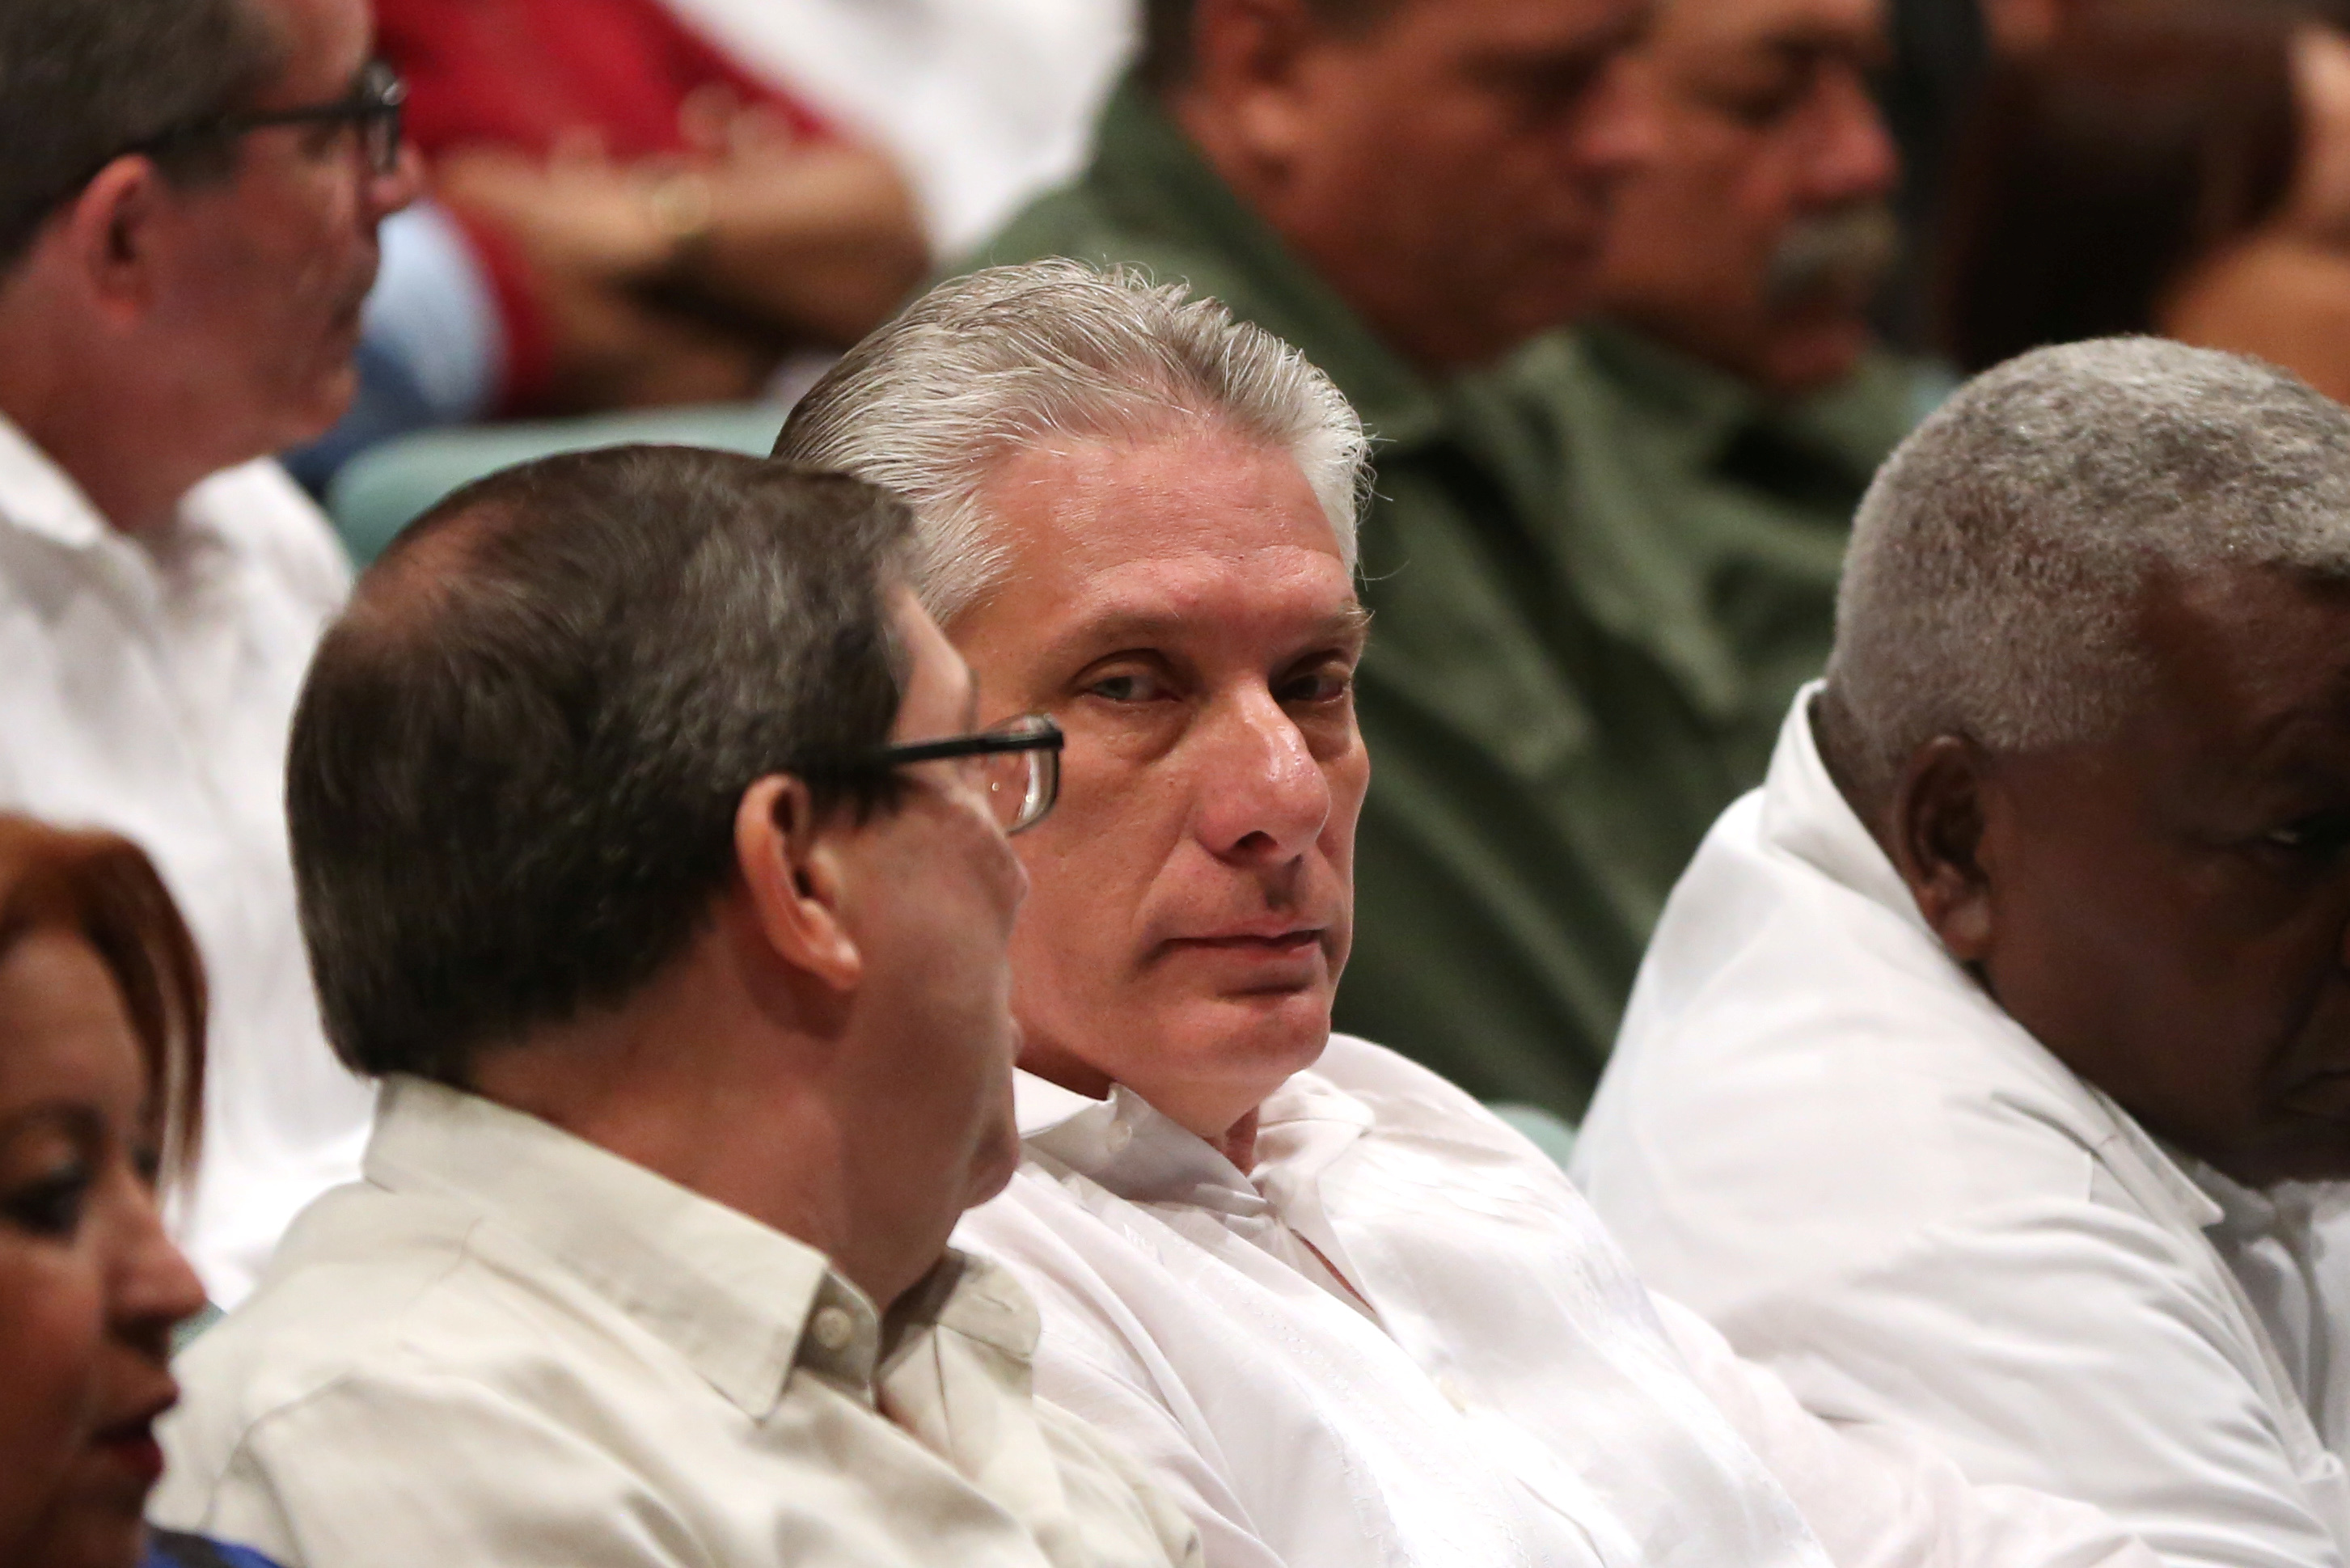 Cuba's First Vice-President Miguel Diaz-Canel (C) chats with Cuban Foreign Minister Bruno Rodriguez (back to camera) inside a theatre during the commemoration of the first anniversary of the interment of Castro's ashes in Santiago, Cuba, December 3, 2017. REUTERS/Alexandre Meneghini - RC14D1D35180